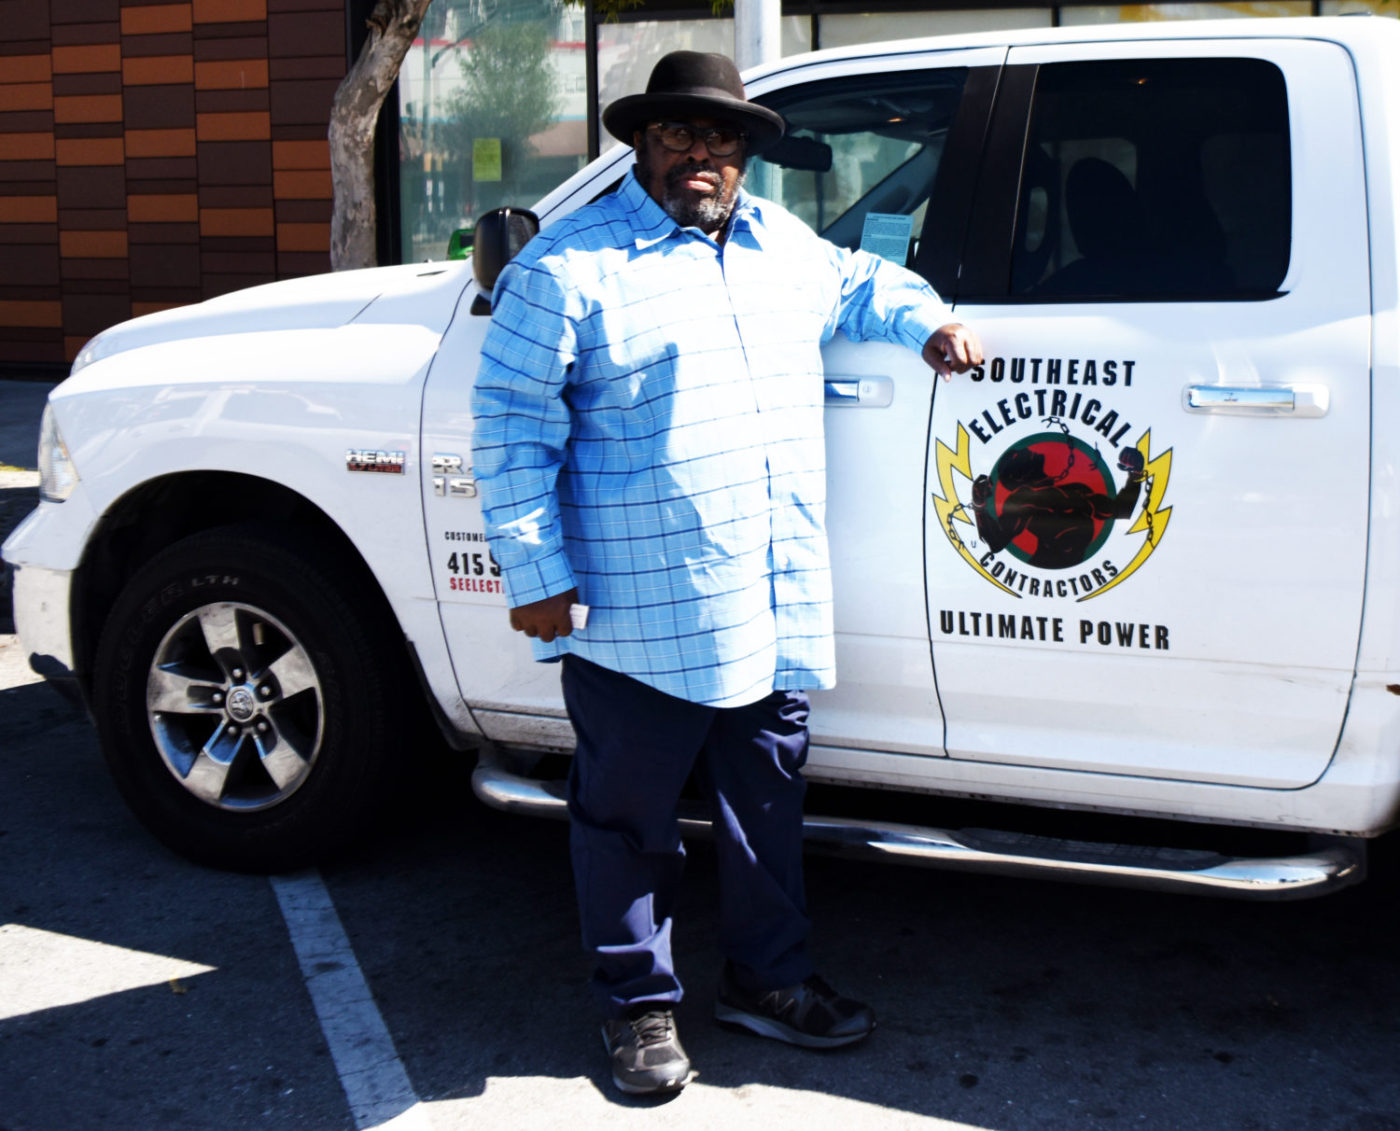 James-Richards-of-Southeast-Electrical-Contractors-stands-by-his-truck-0520-by-Johnnie-Burrell-1400x1131, Why bother? A question by Black small businesses during the COVID-19 crisis, Local News & Views